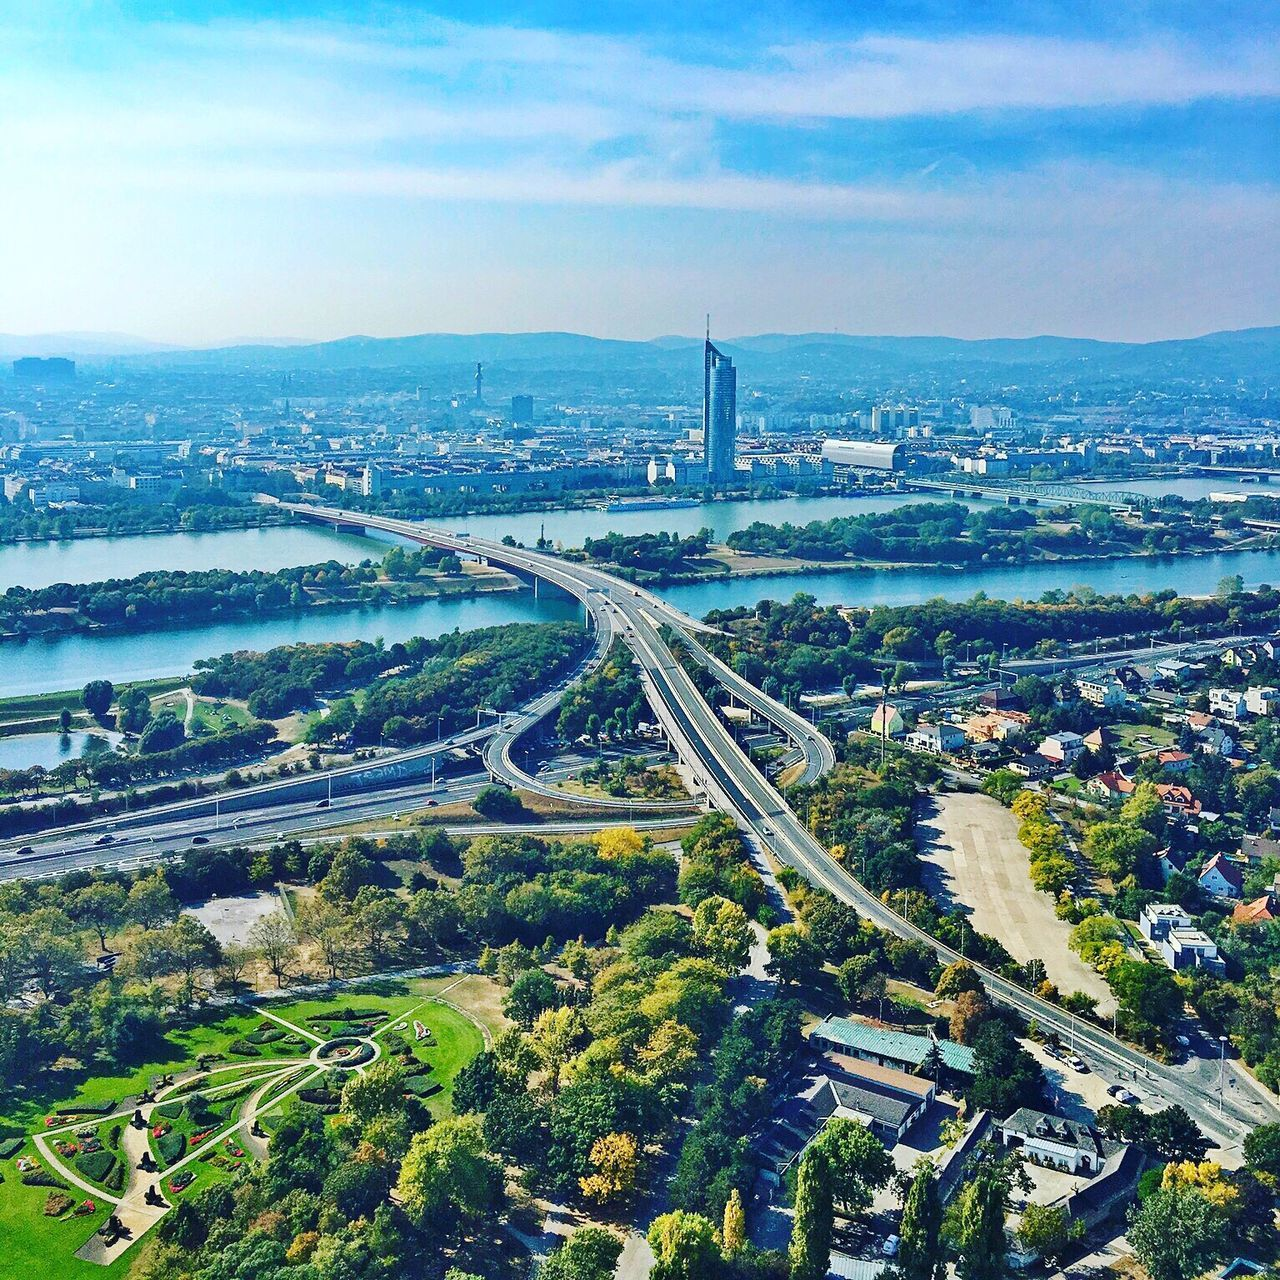 architecture, city, connection, built structure, aerial view, cityscape, transportation, road, high angle view, bridge - man made structure, sky, building exterior, no people, city life, outdoors, skyscraper, travel destinations, river, day, water